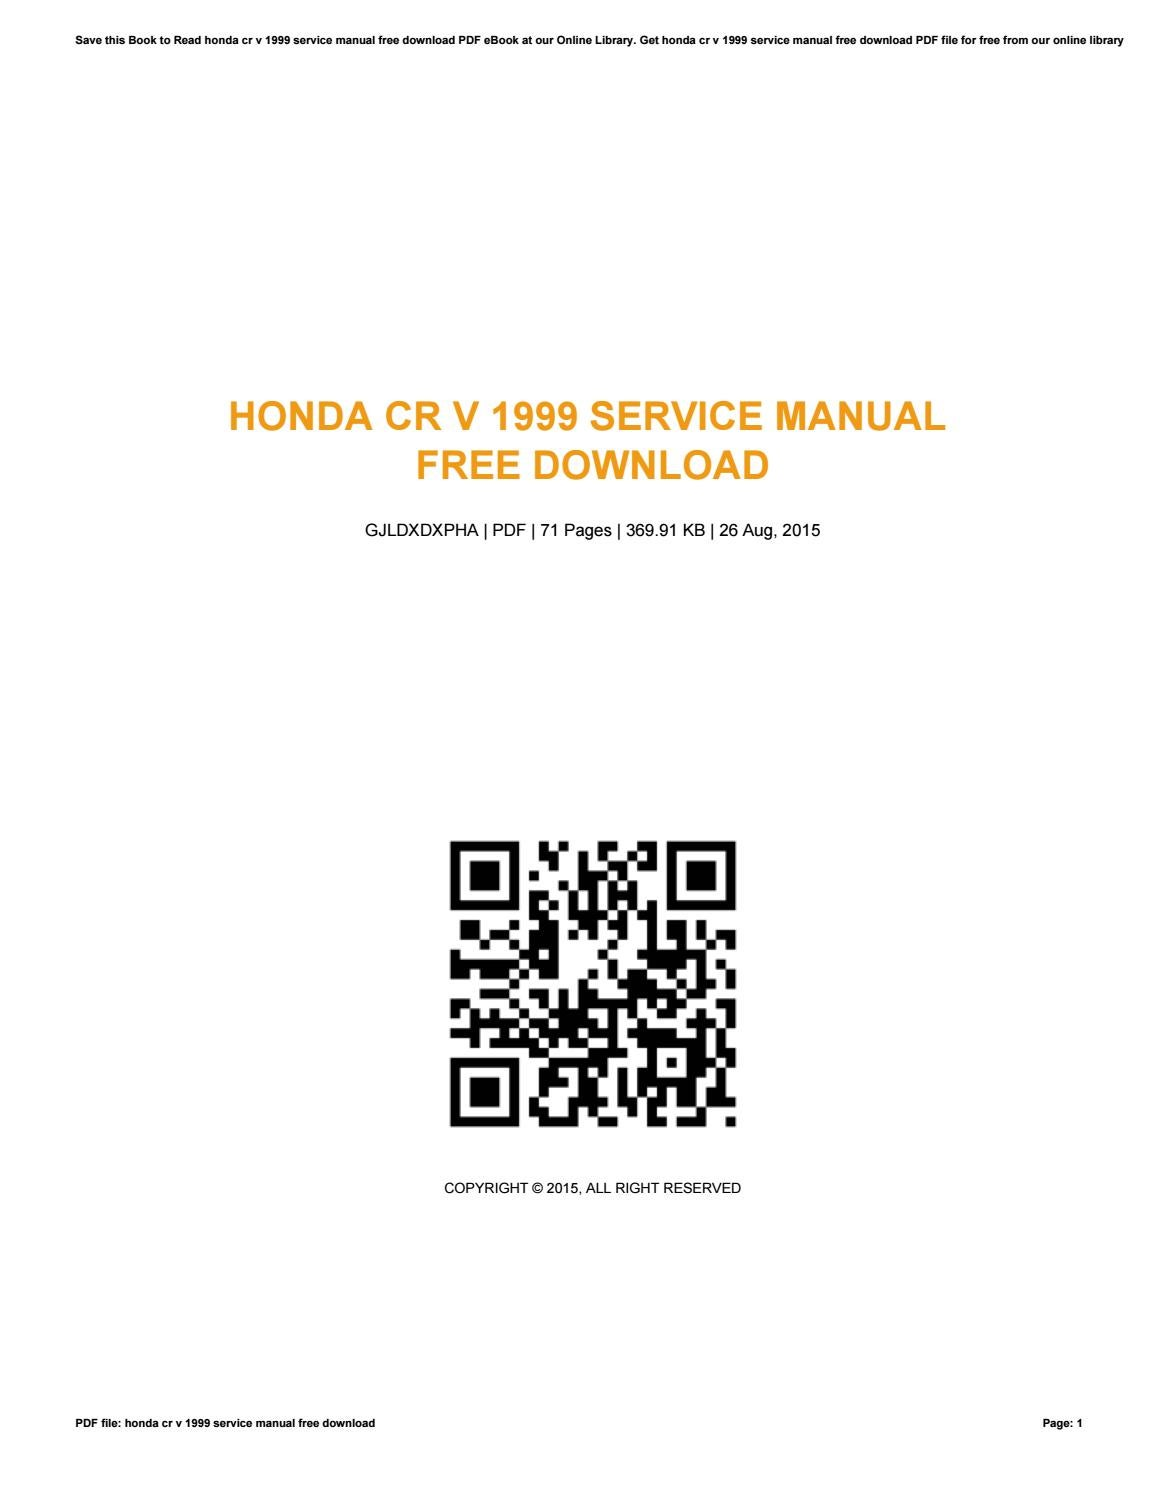 Honda cr v 1999 service manual free download by DianaMitchell1945 - issuu